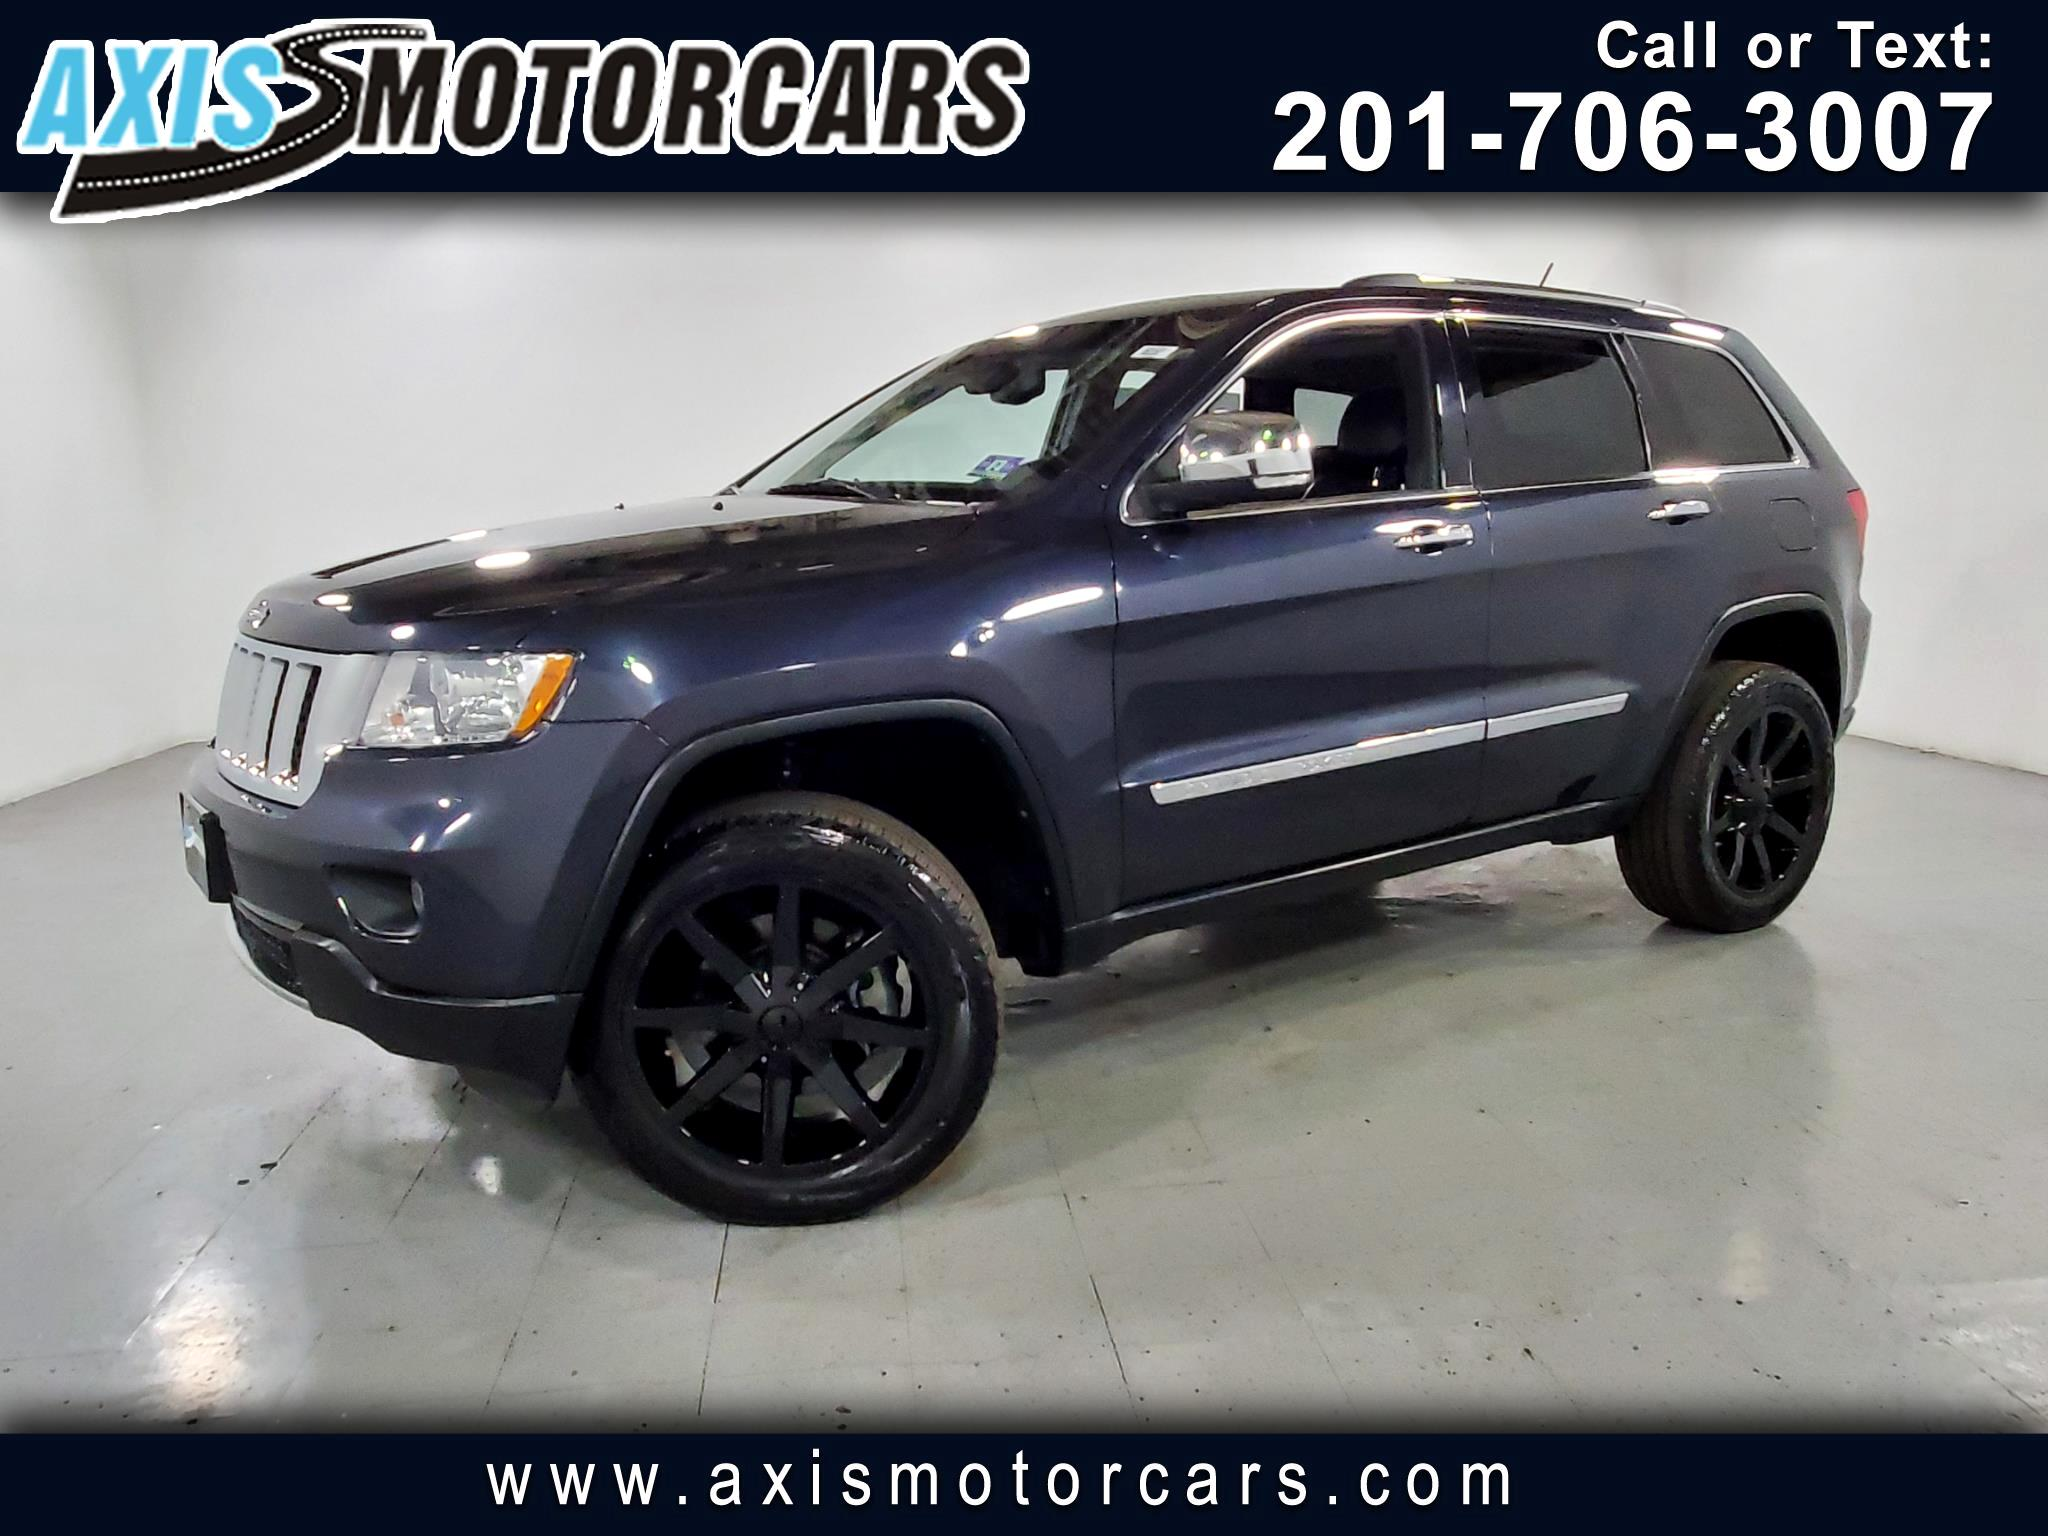 2013 Jeep Grand Cherokee w/Navigation Backup Camera Sunroof